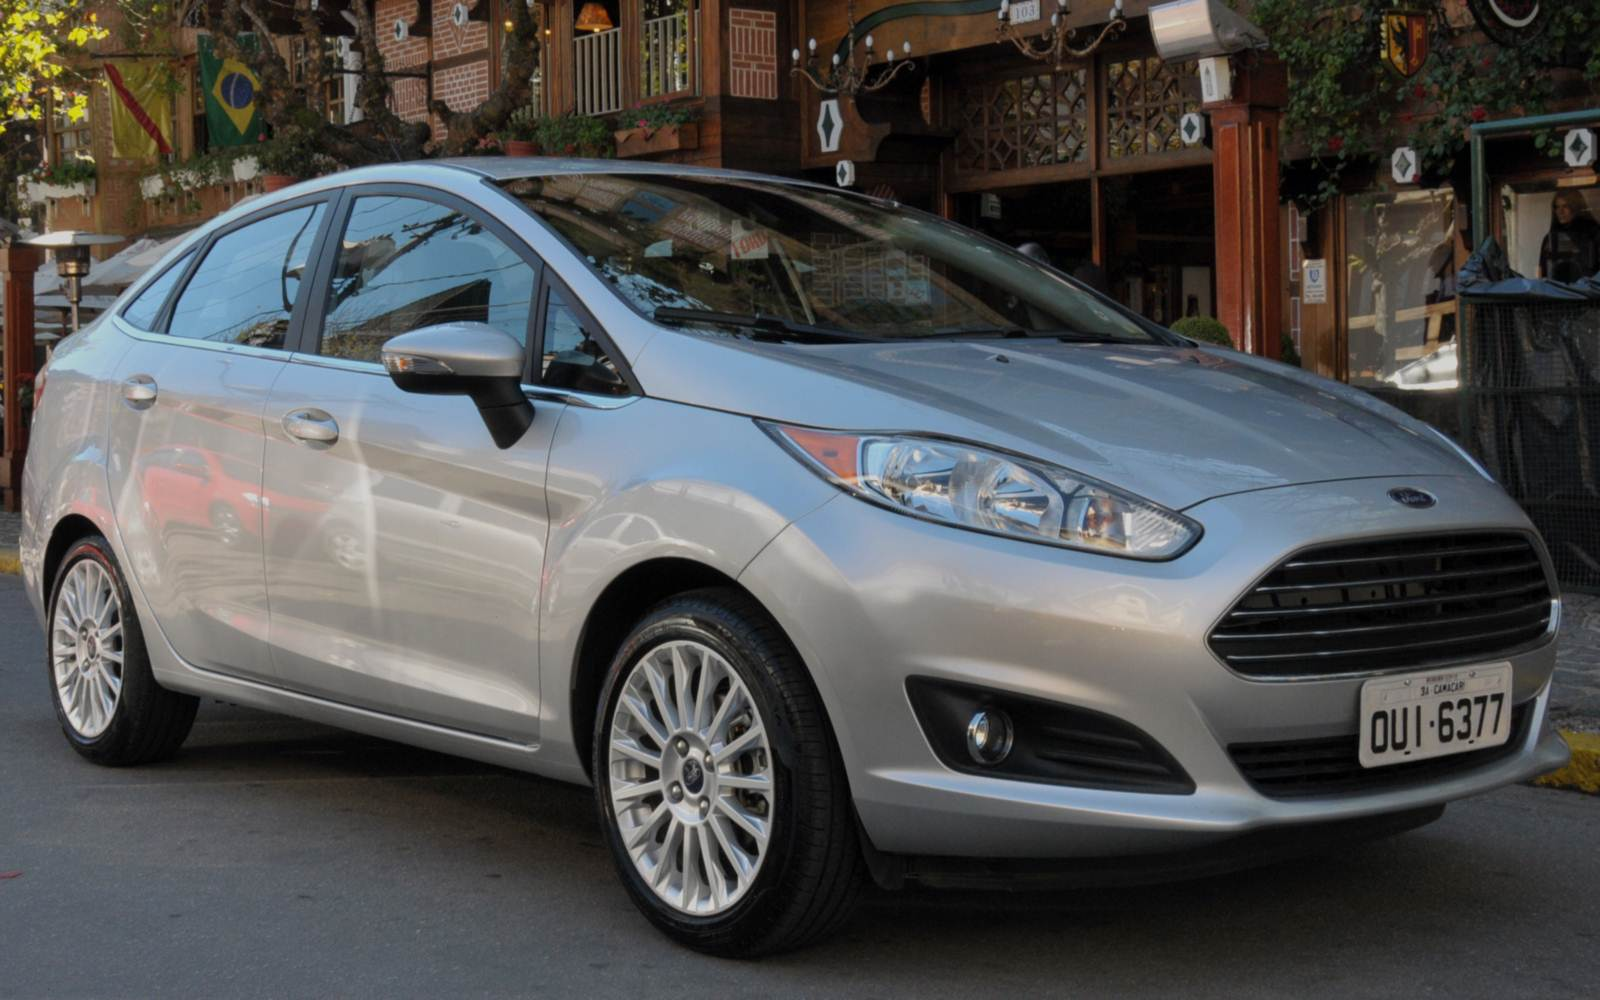 Ford Fiesta Powershift - problemas